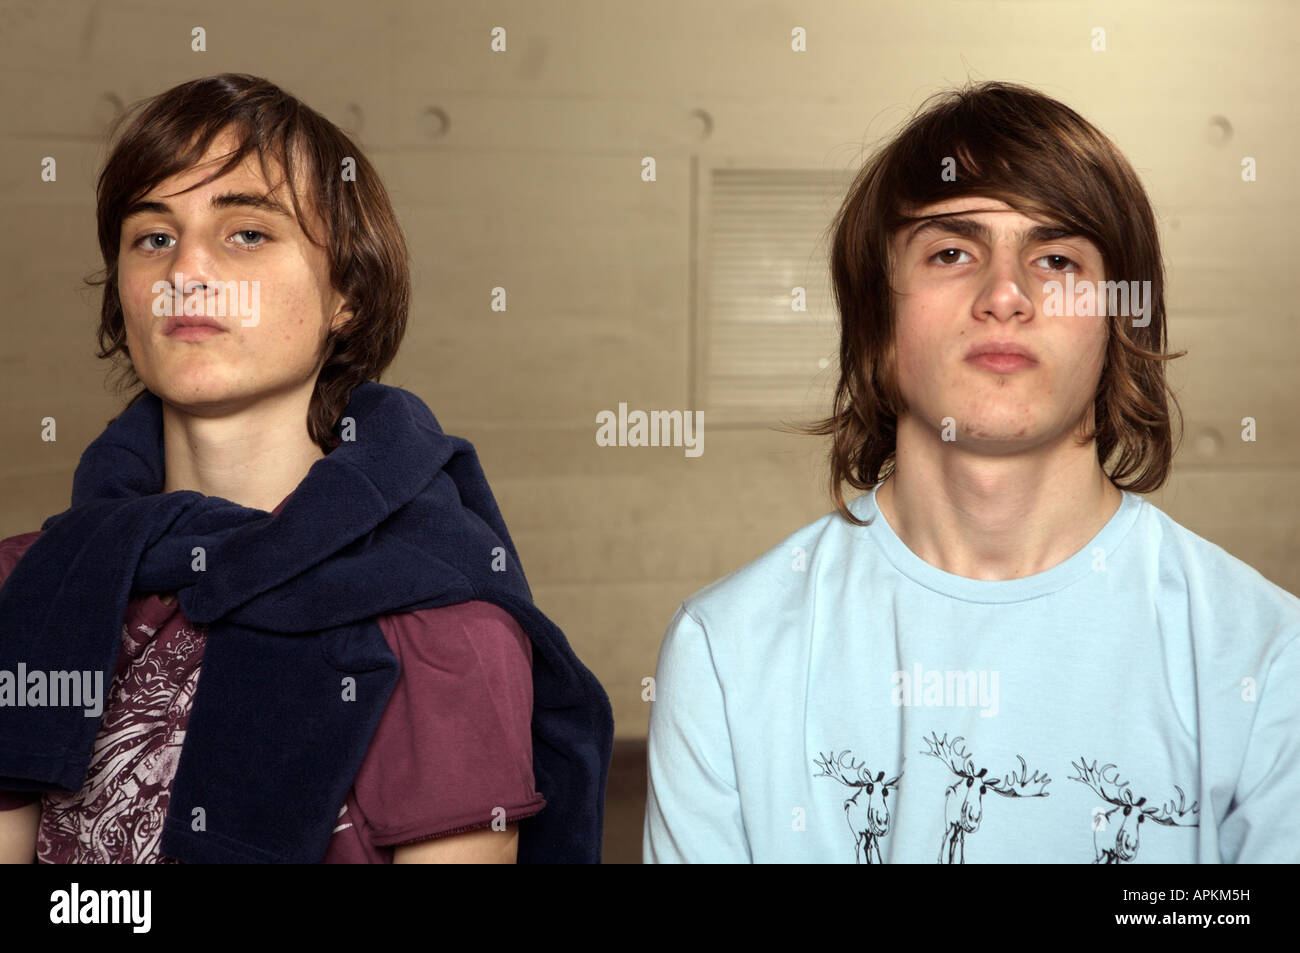 Students in cafeteria - Stock Image